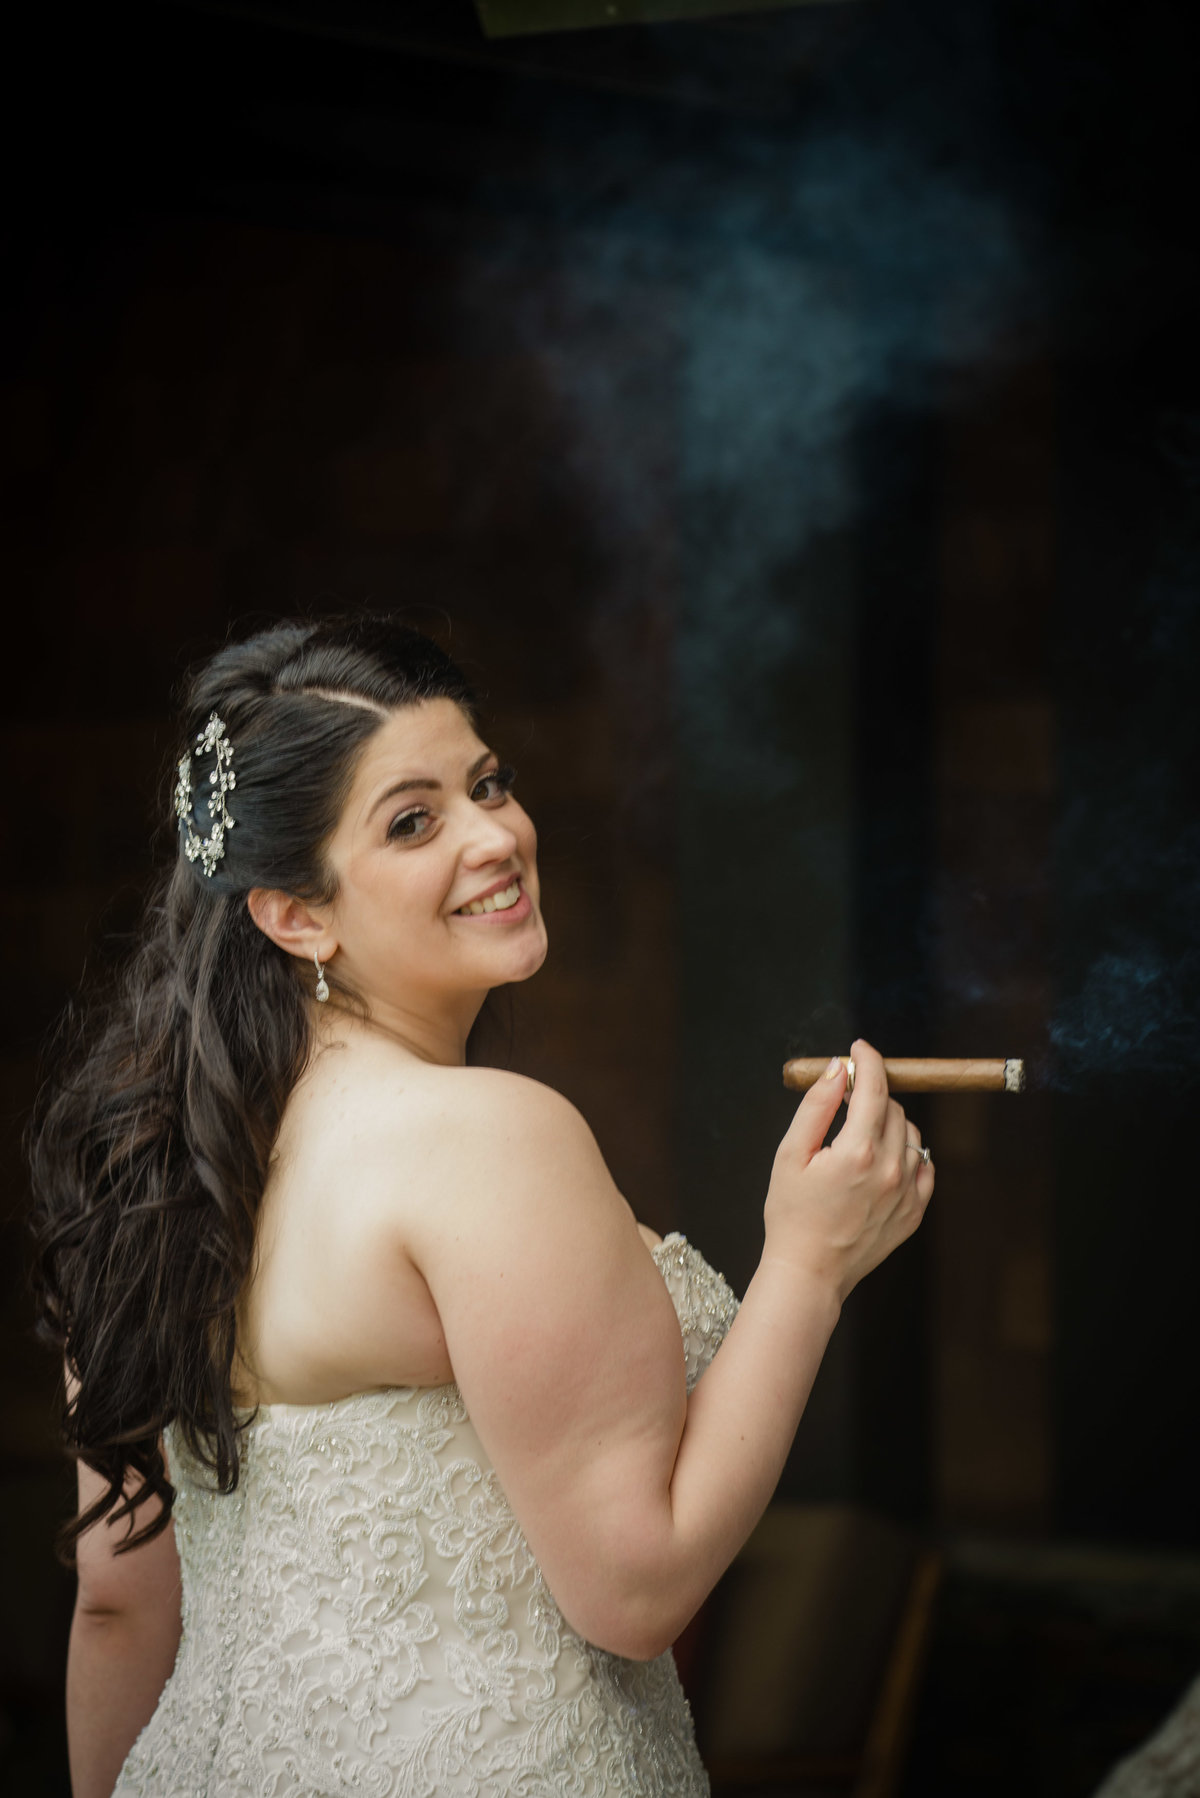 Bridal Portrait - Insignia Steak House, New York - Imagine Studios Photography - Wedding Photographer